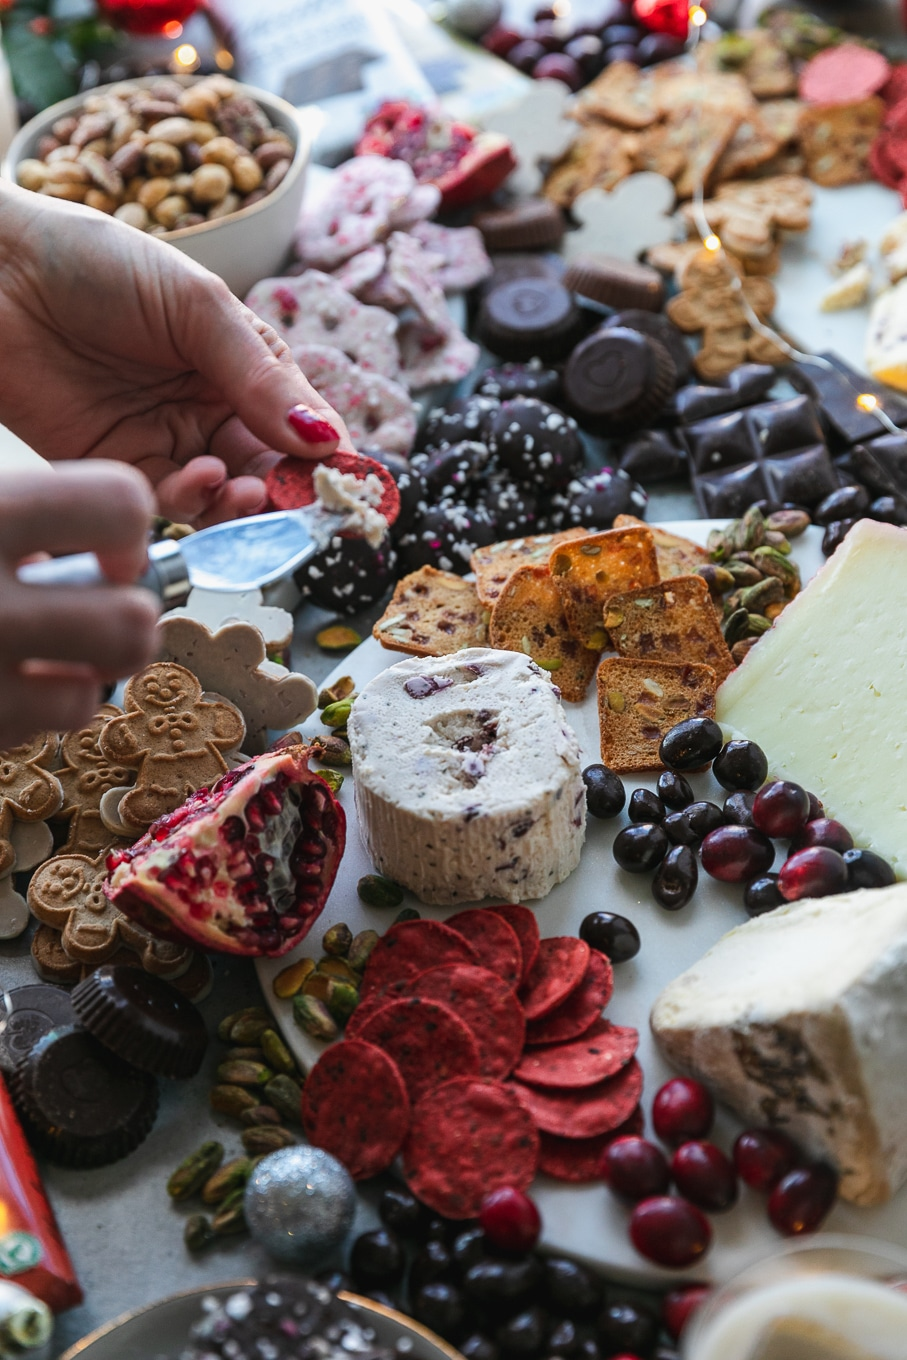 Close up shot of a cheeseboard surrounded by chocolate and treats, with hands spreading some cheese on a cracker